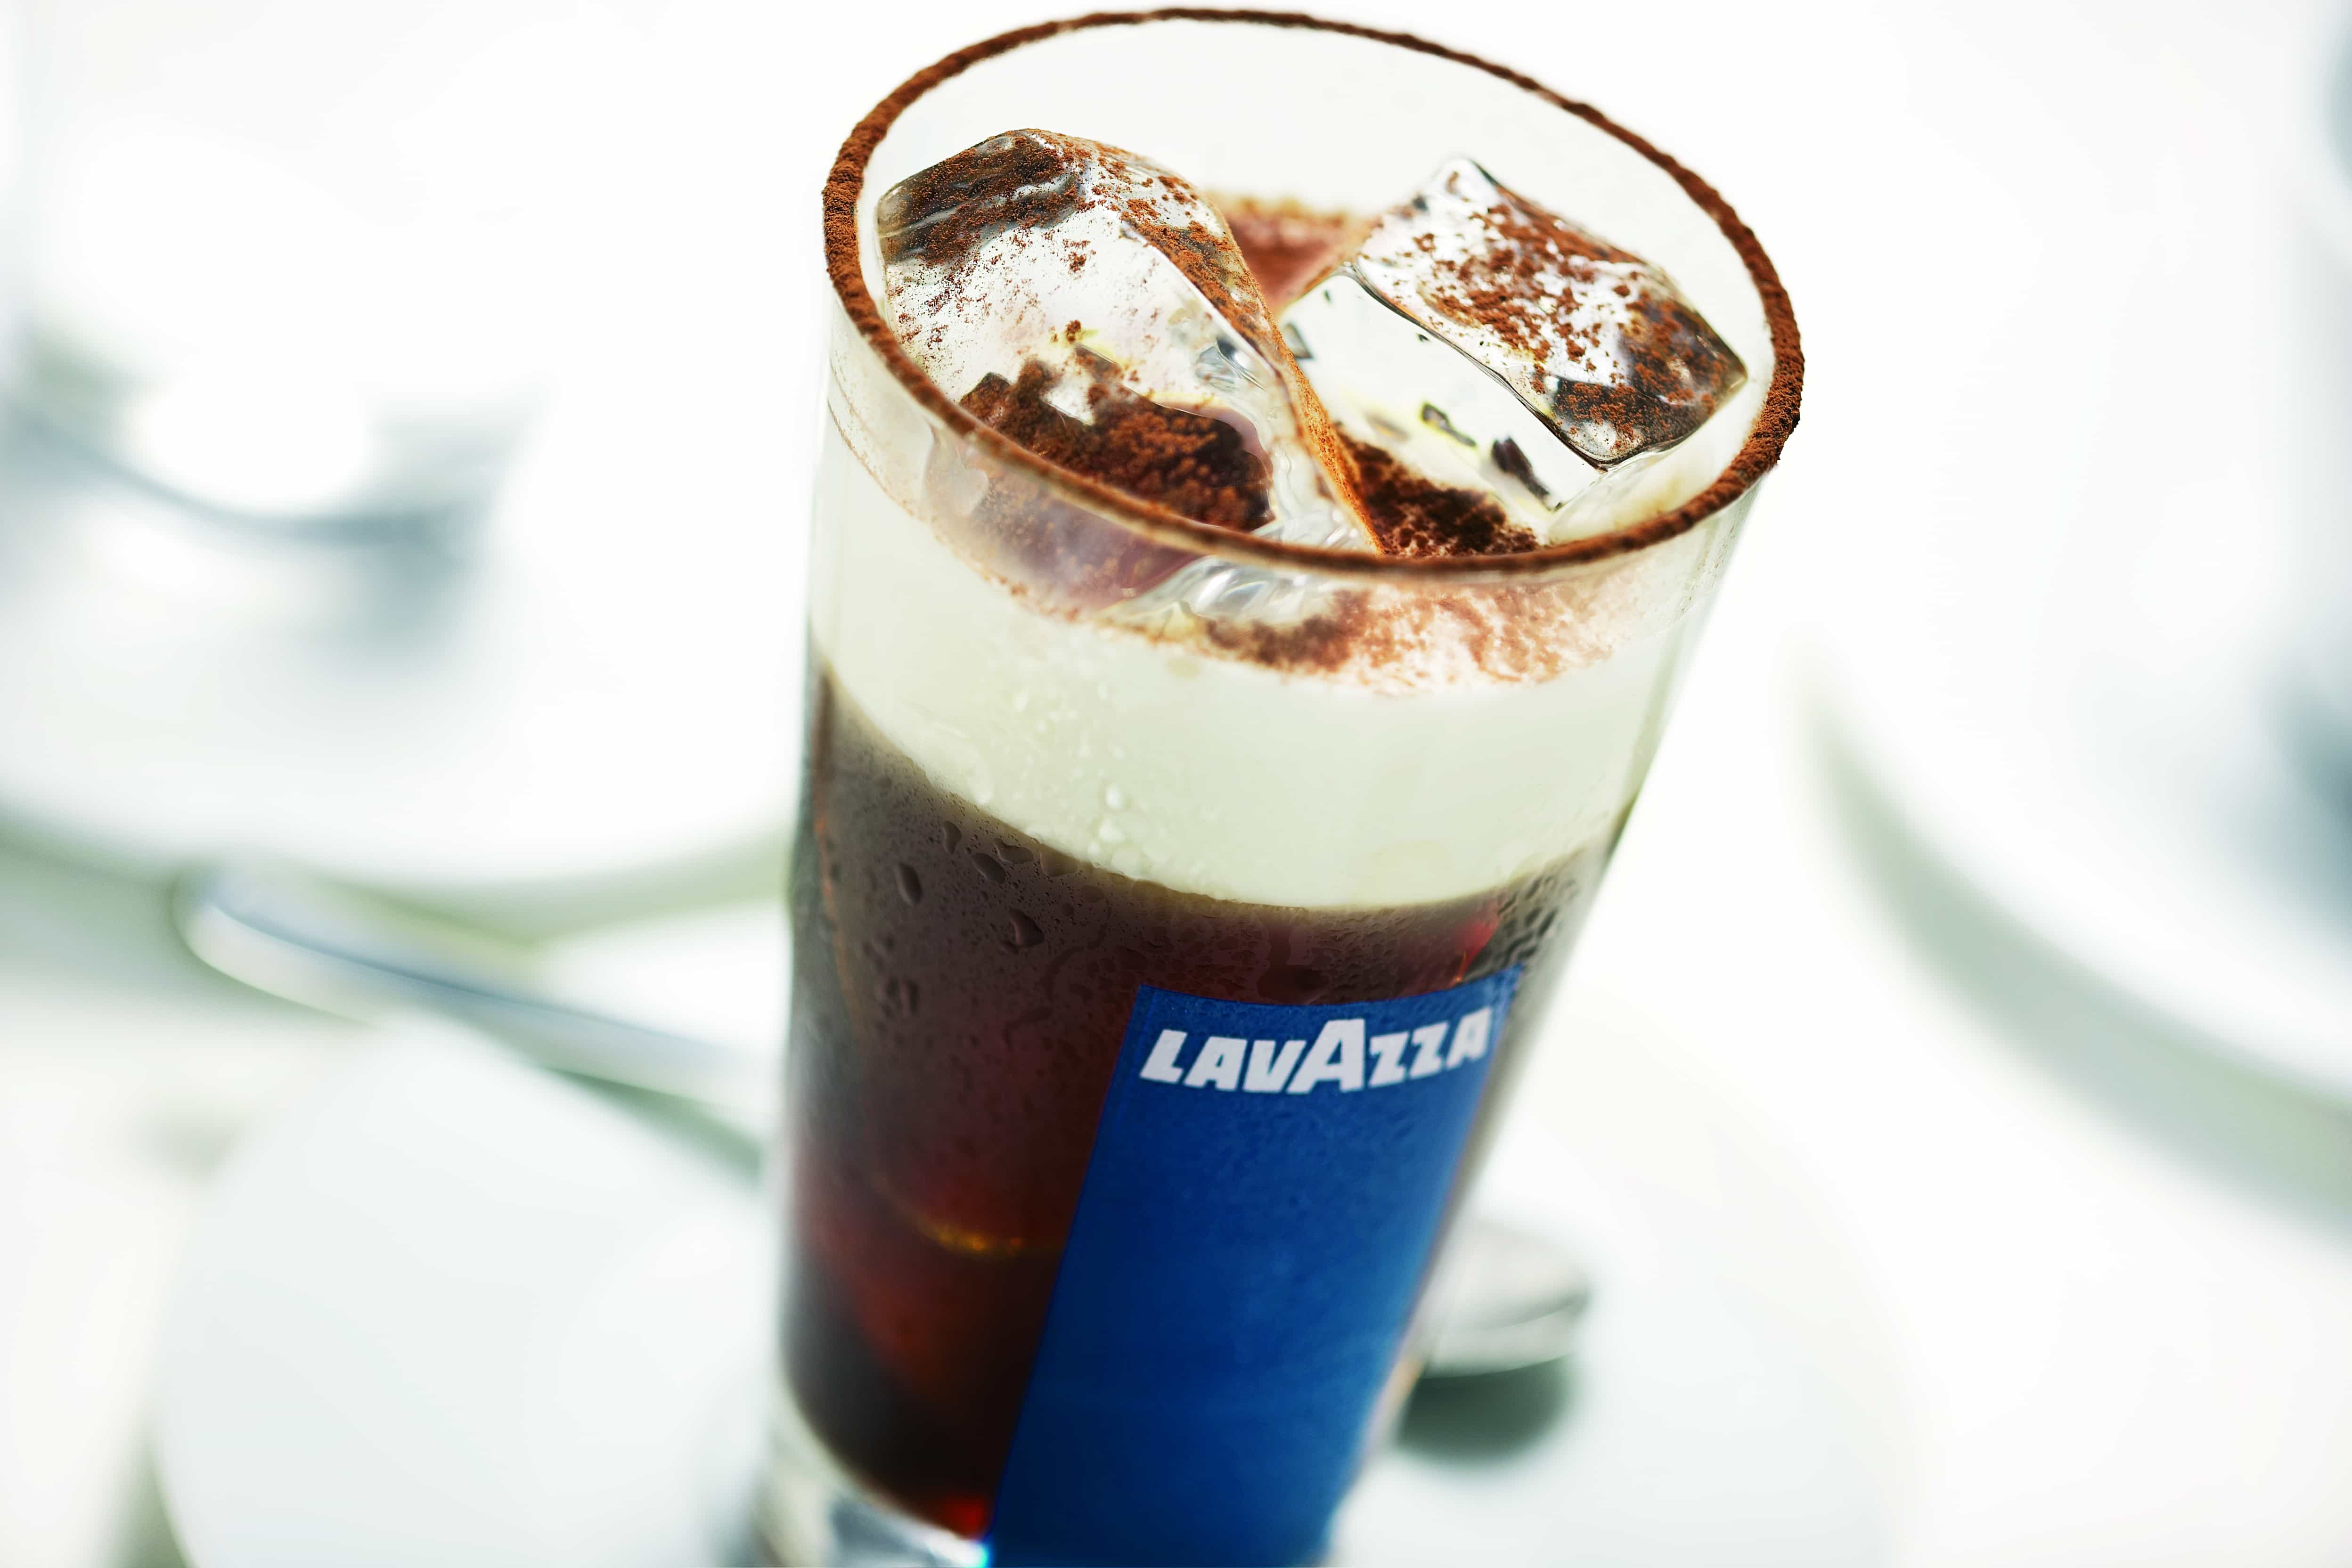 Nicolle Dudek clup ice bianco 1 - LAVAZZA Invites Coffee Lovers to Guggenheim for FREE Cold Brew on First Day of Summer